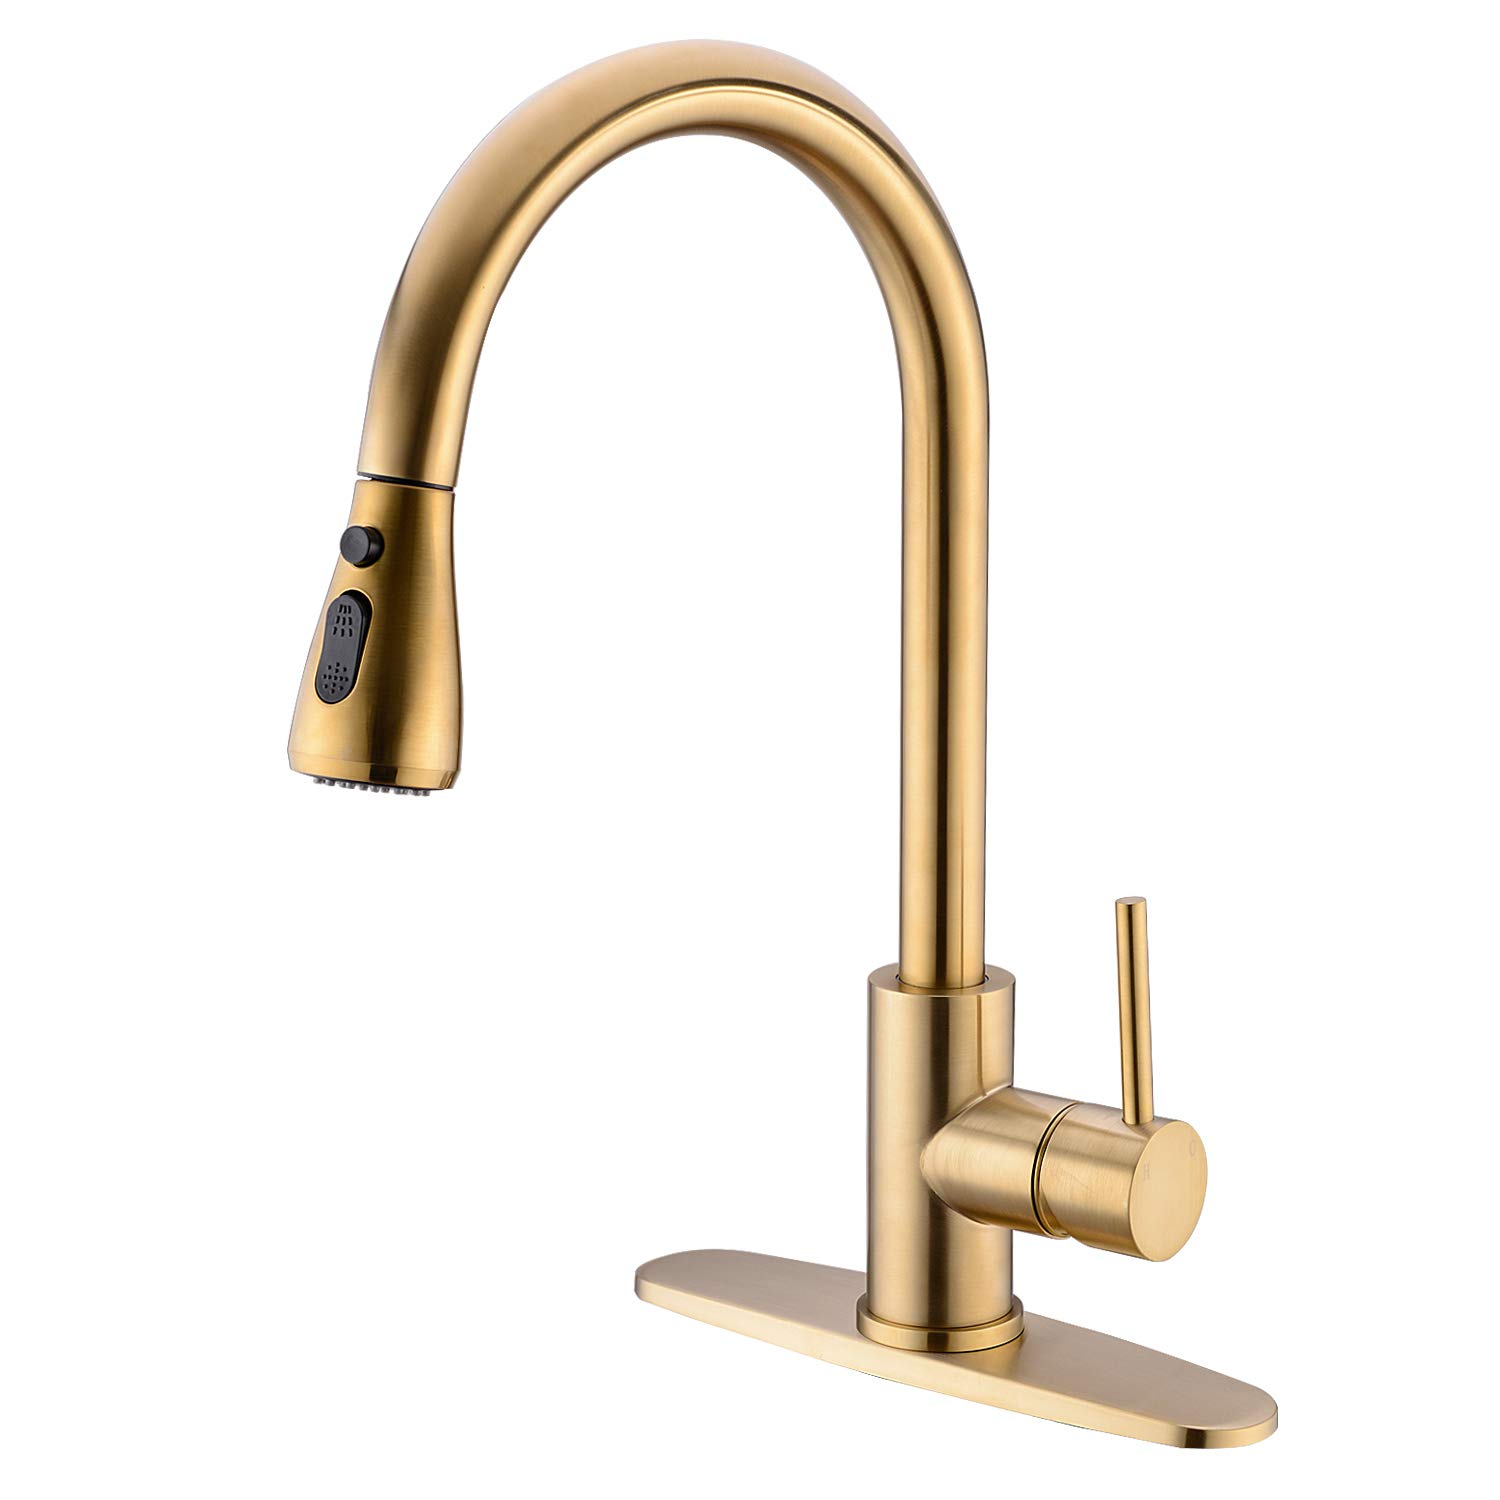 Trustmi Single Handle High Arc Brushed Gold Brass Pull Out Kitchen Faucet Single Level Kitchen Sink Faucets With 3 Setting Pull Down Sprayer And Deck